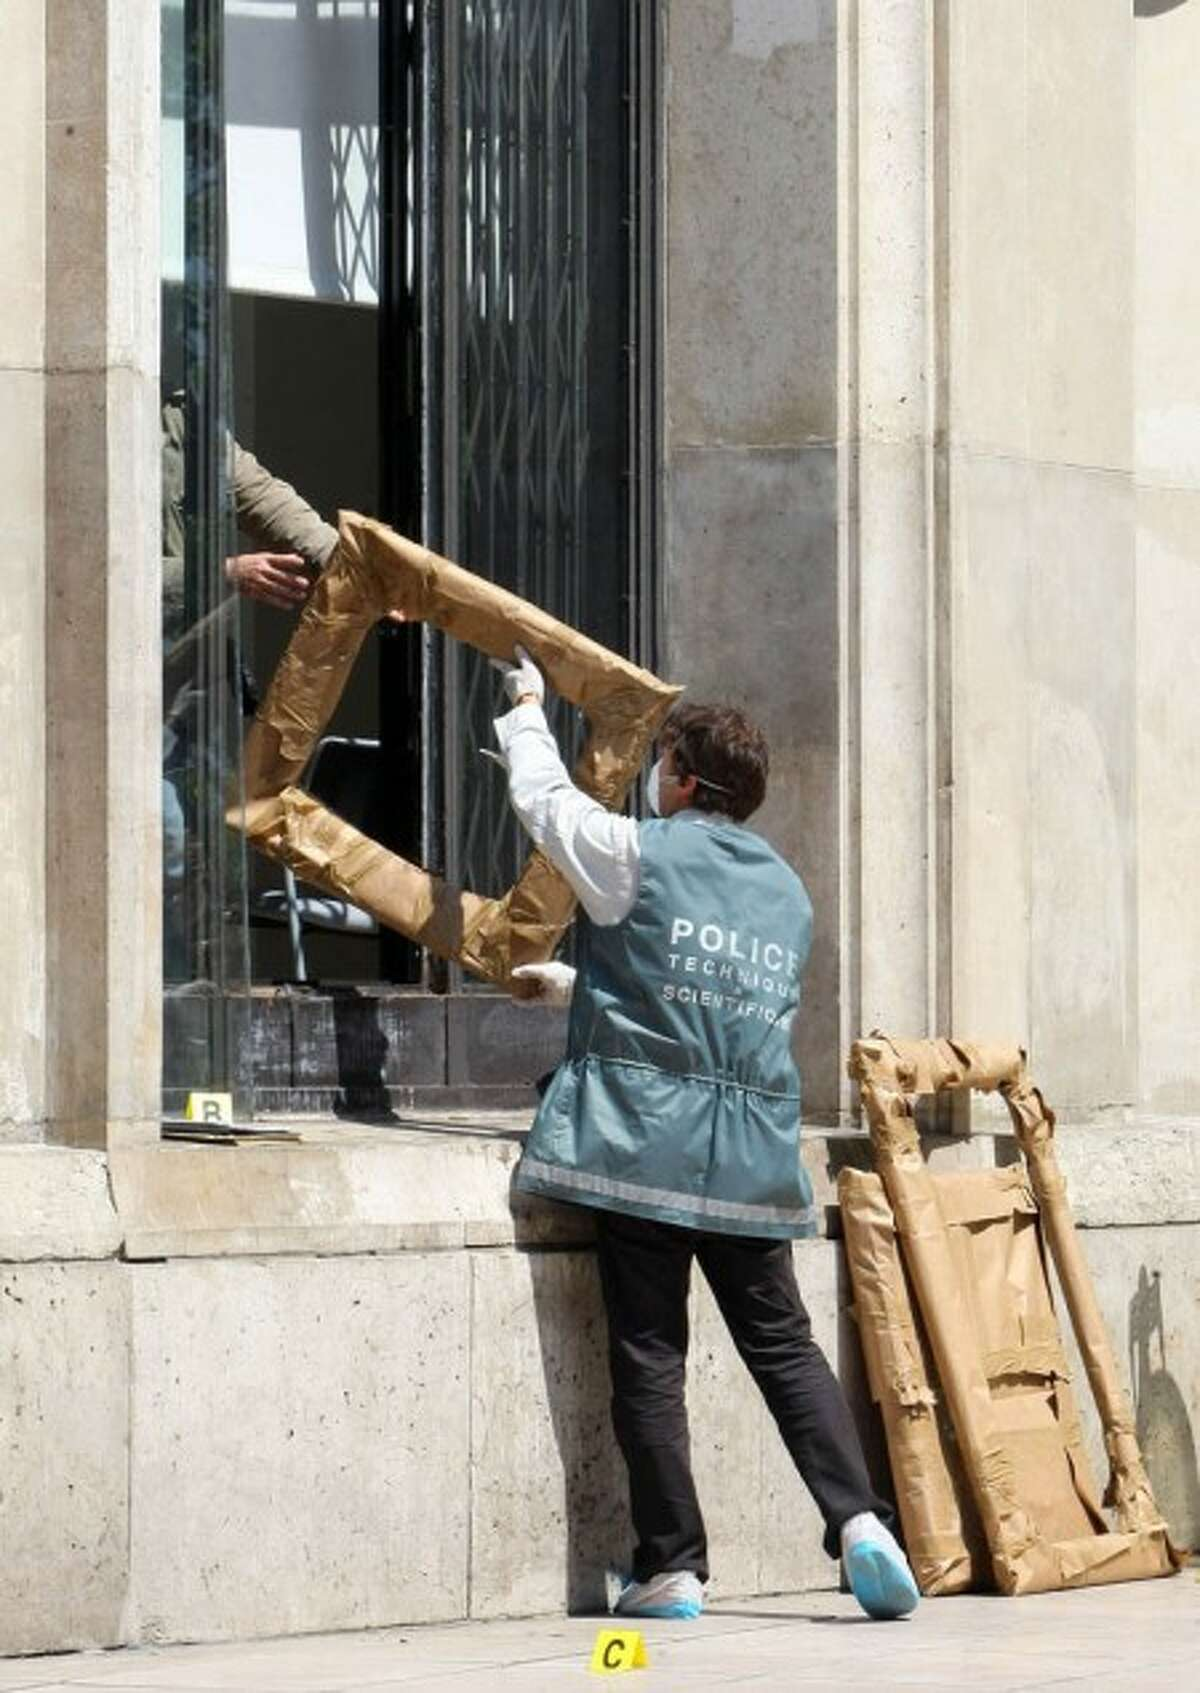 A police officer hands the packed frames of the stolen paintings, to a colleague, from outside the Paris Museum of Modern Art, following the stealing of five paintings Thursday May 20, 2010. Police and prosecutors say a lone thief has stolen five paintings worth a total of Euros 500 million ($613 million), including works by Picasso and Matisse. Other frames of the paintings arevisible at right. (AP Photo/Jacques Brinon)